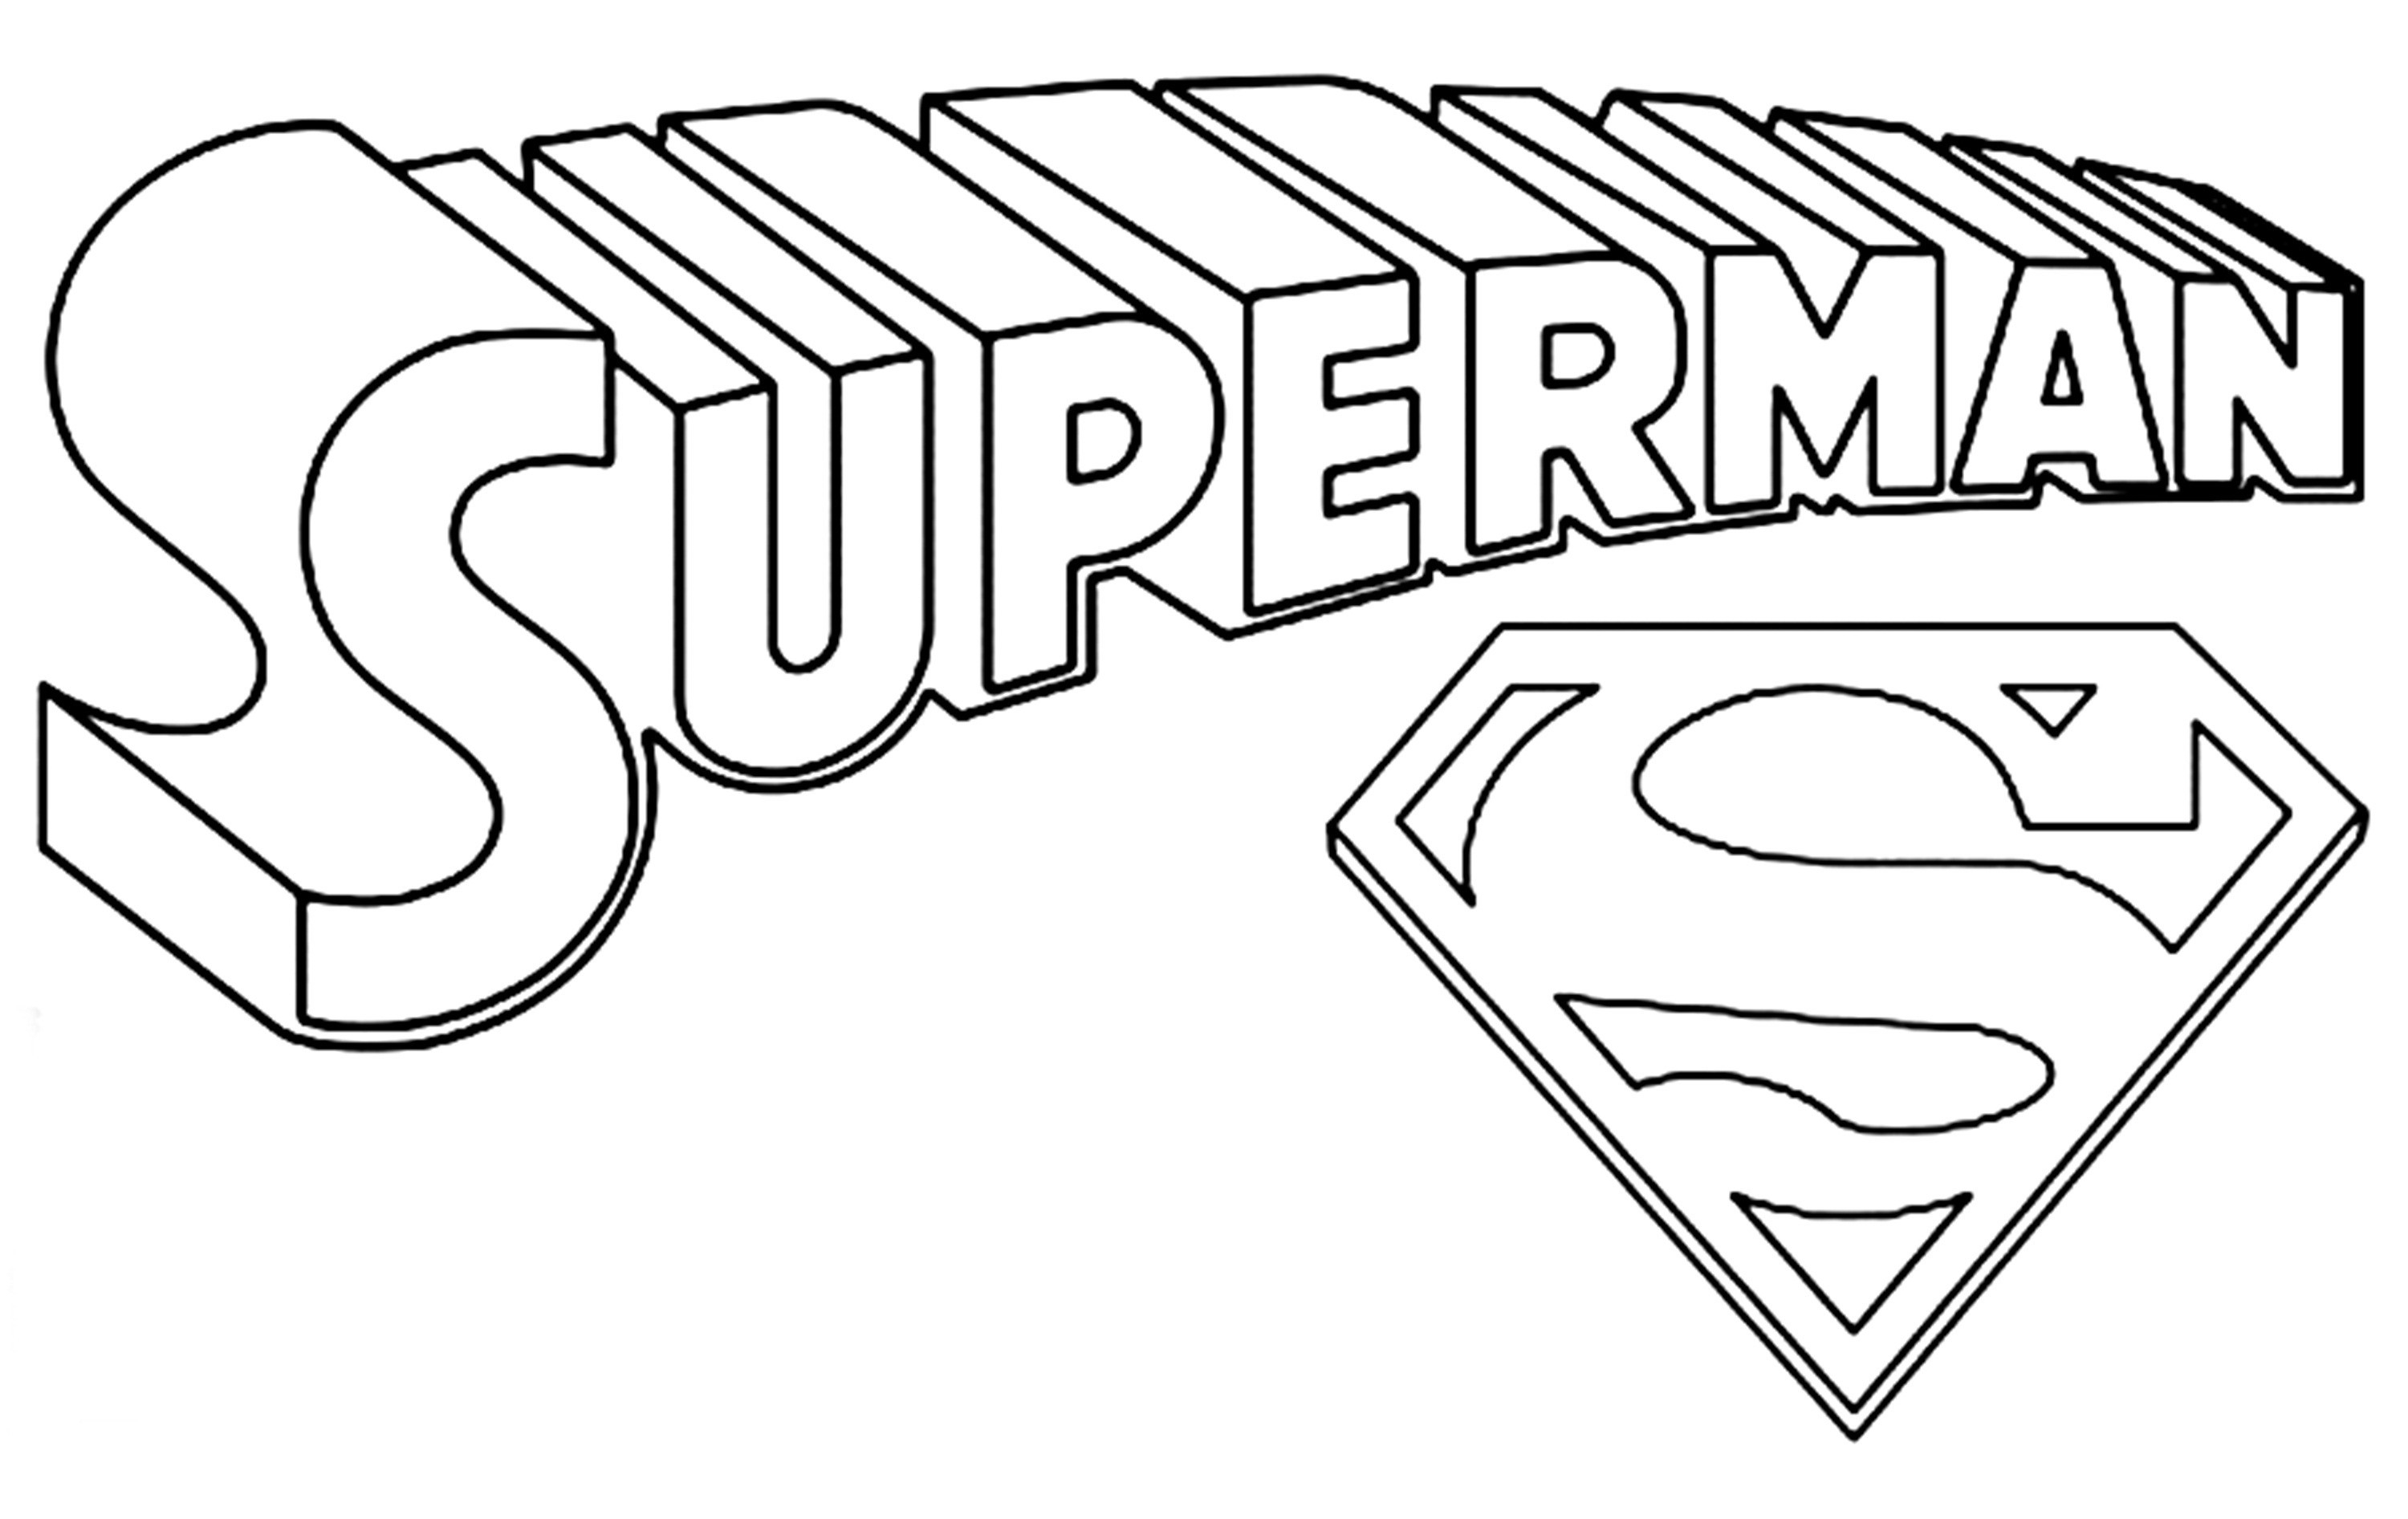 Superman Coloring Page On Superman Coloring Pages Coloring Pages For Children